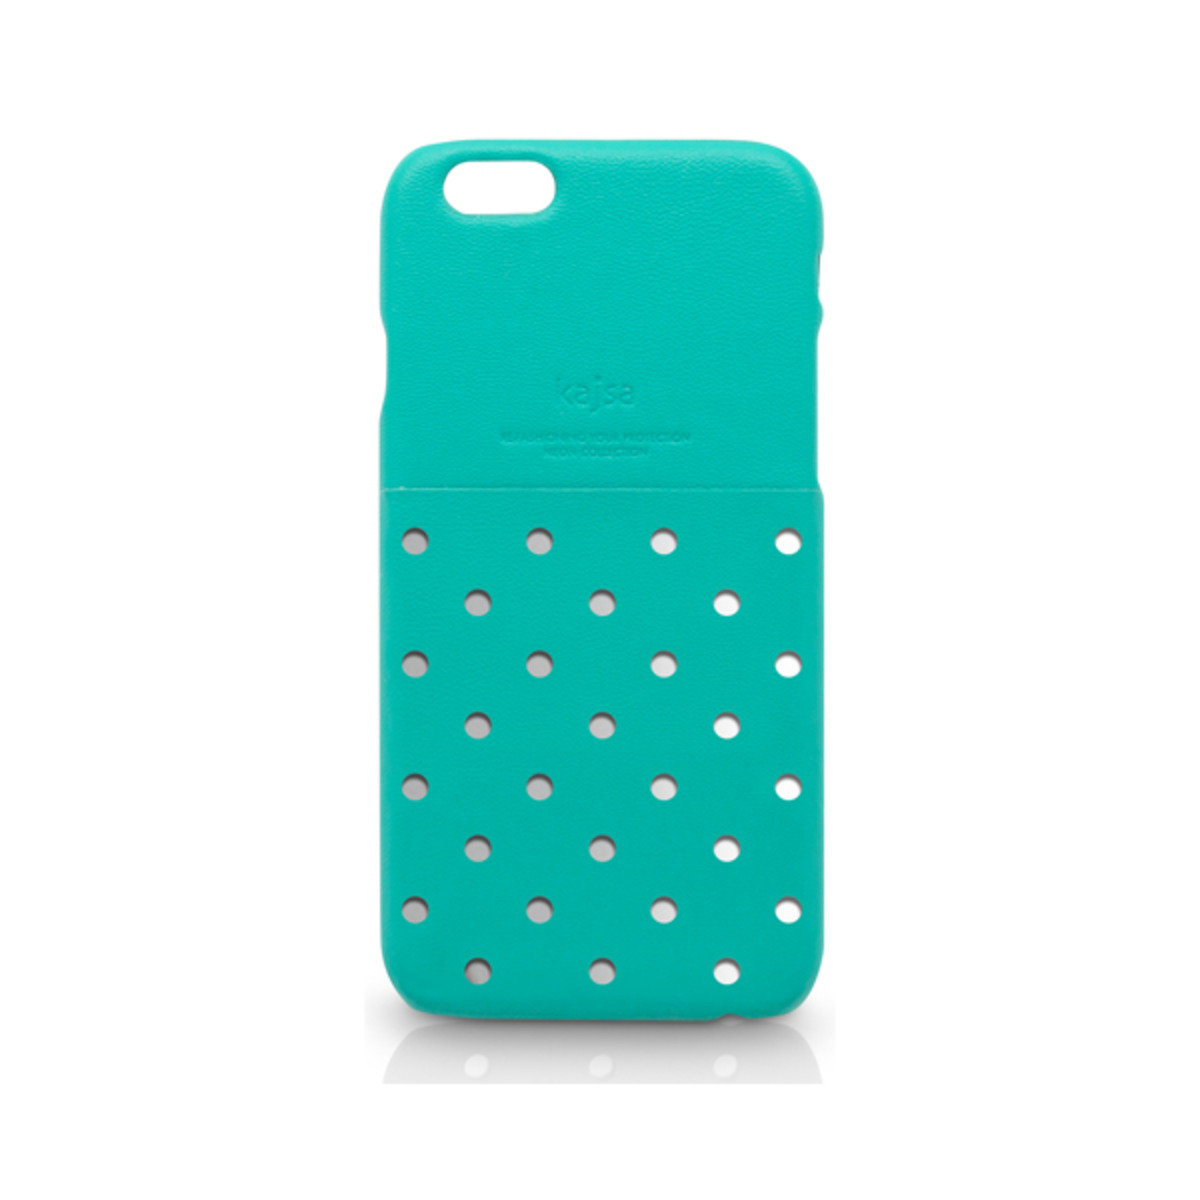 iPhone 6 (4.7'') 電話殼: Neon Collection Polka Dot Pattern pocket backcase - Tiffany